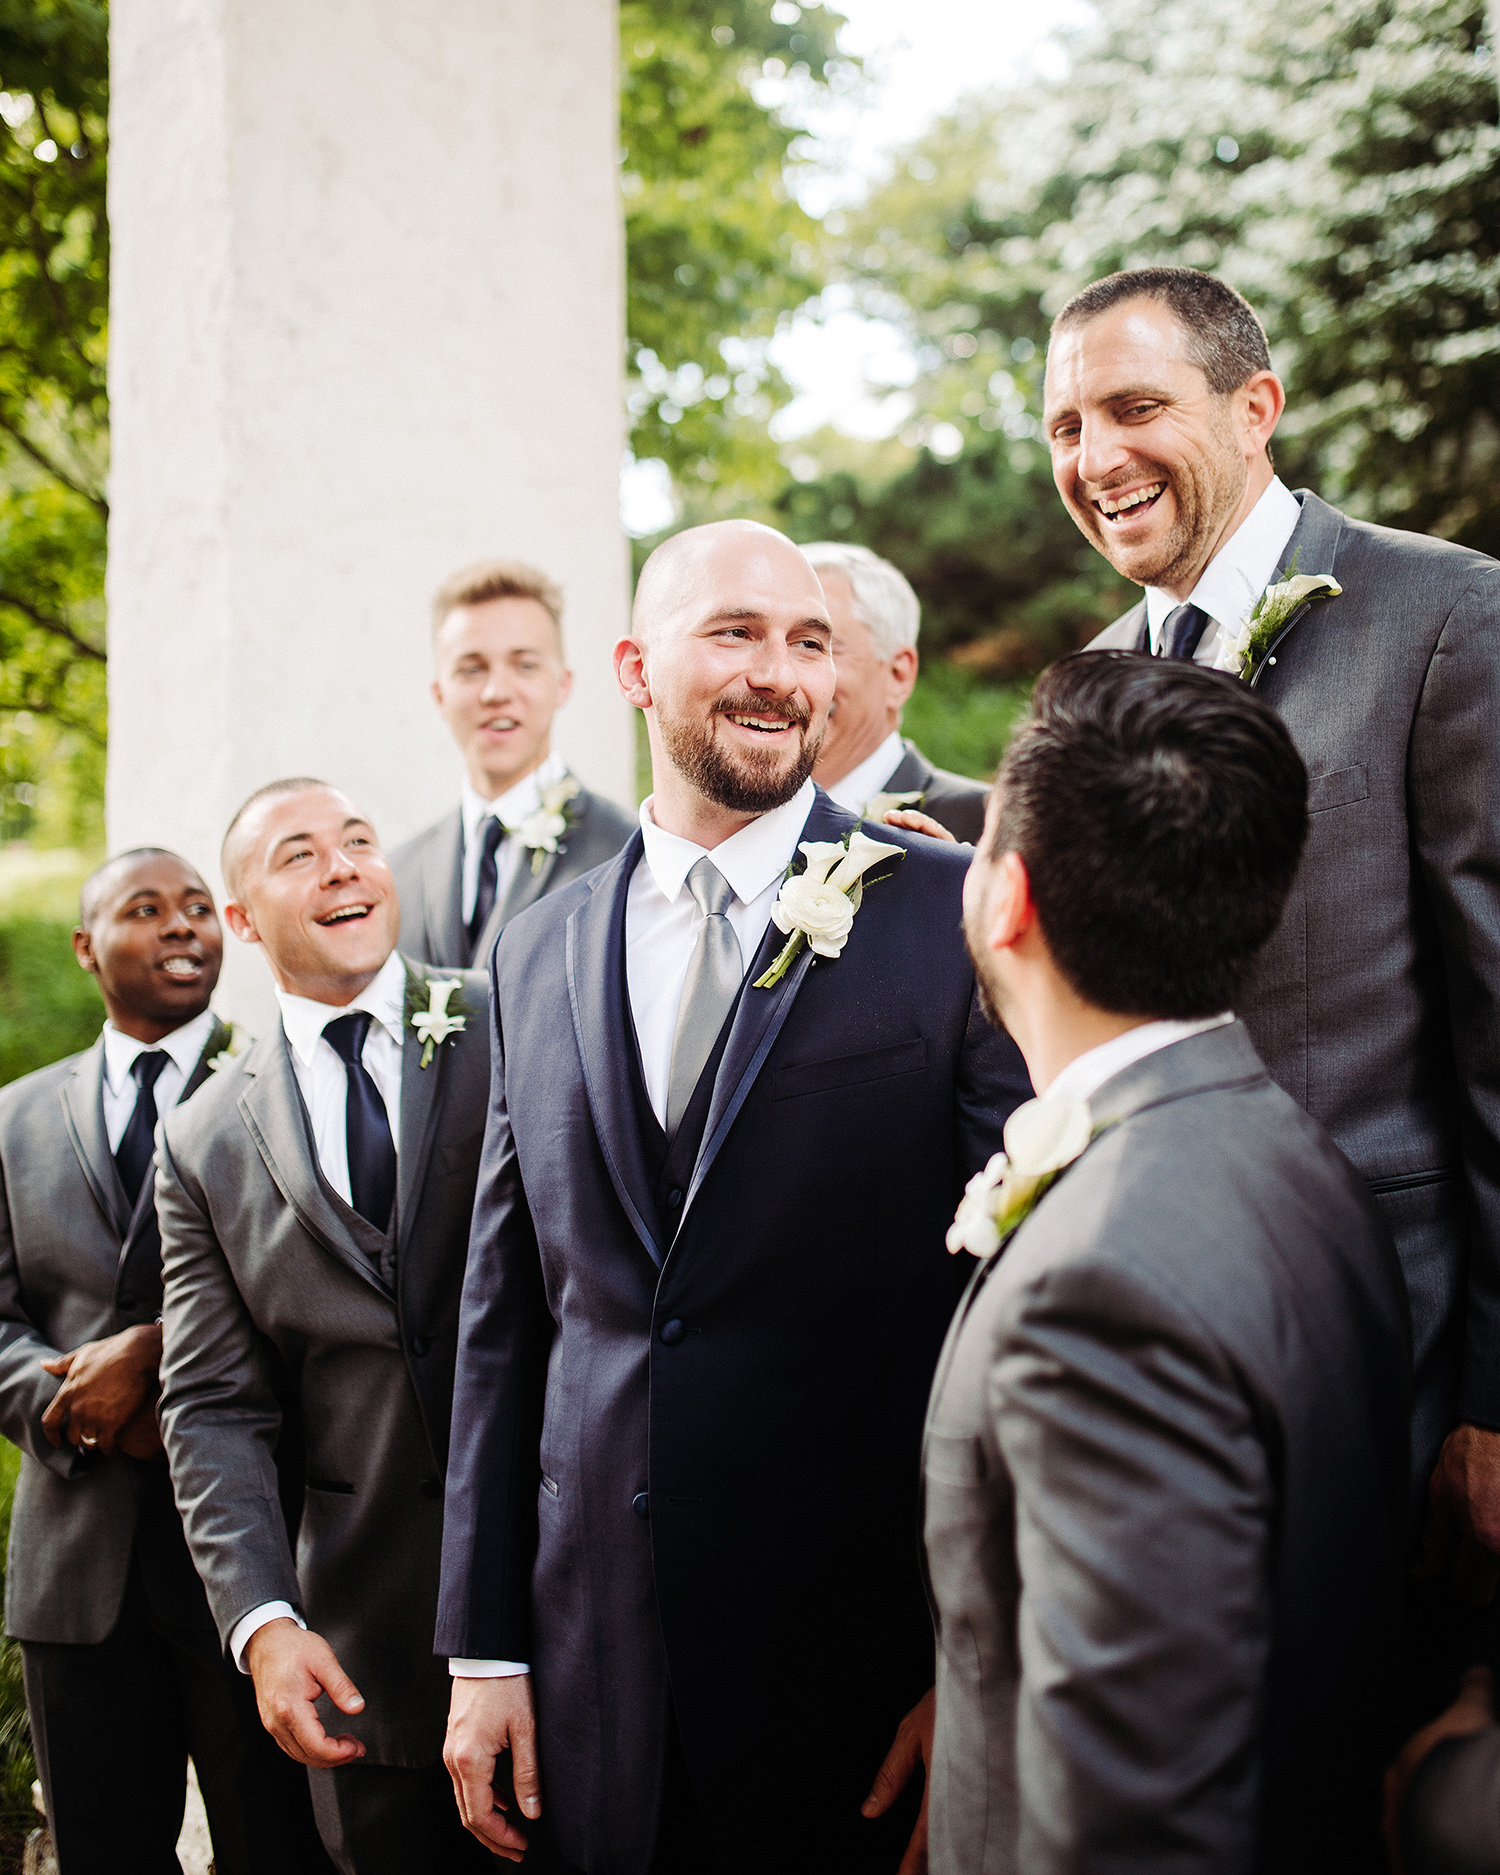 bryanna nick wedding groom groomsmen